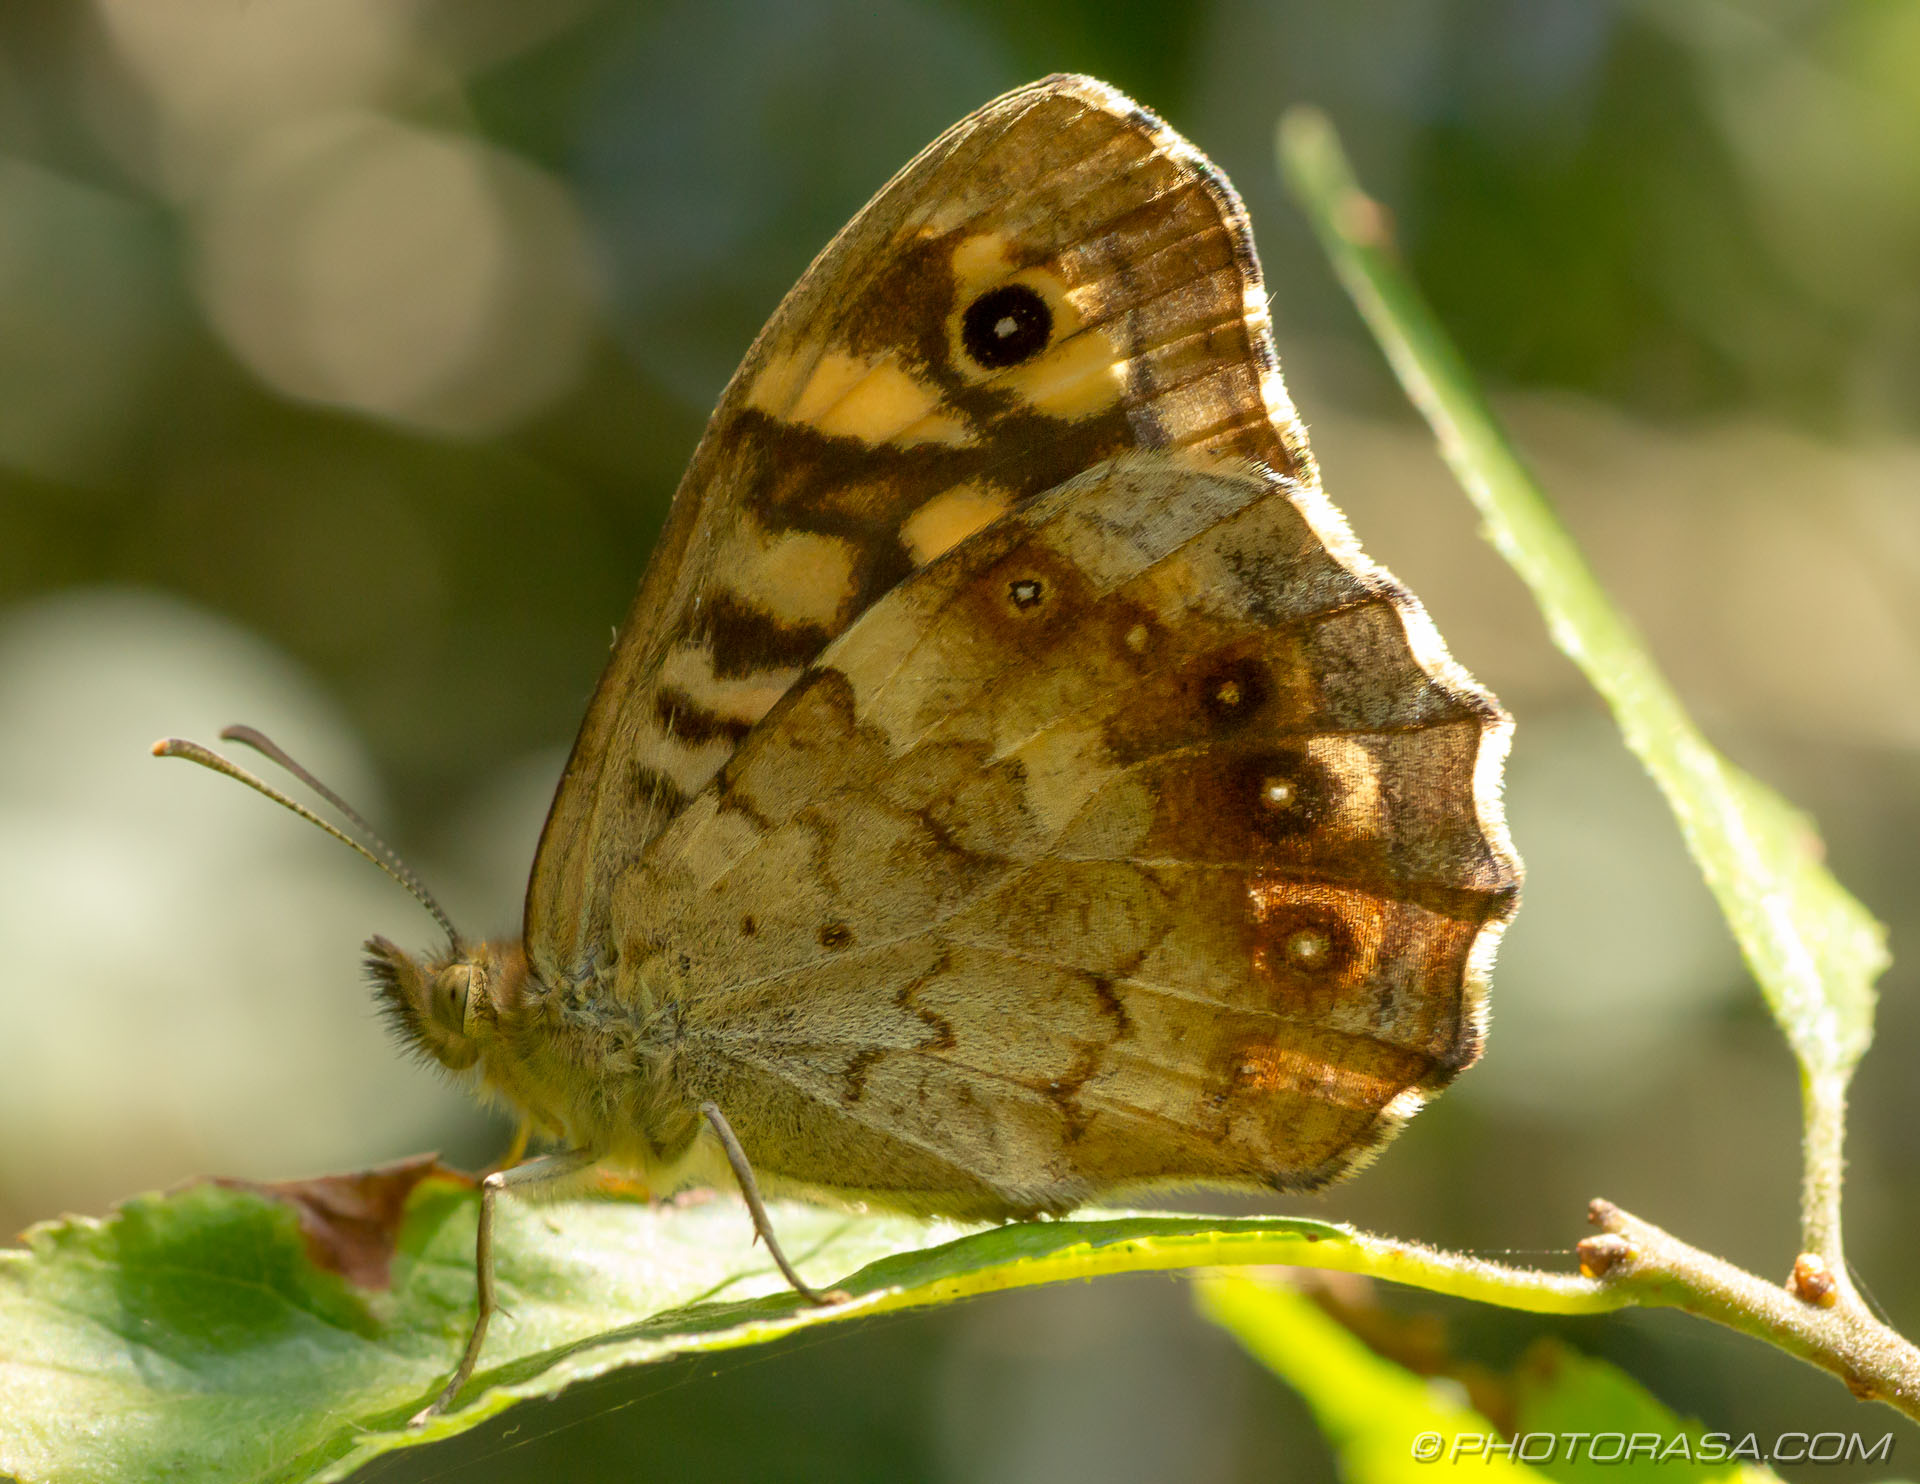 https://photorasa.com/speckled-wood-butterfly/speckled-wood-butterfly-underside/